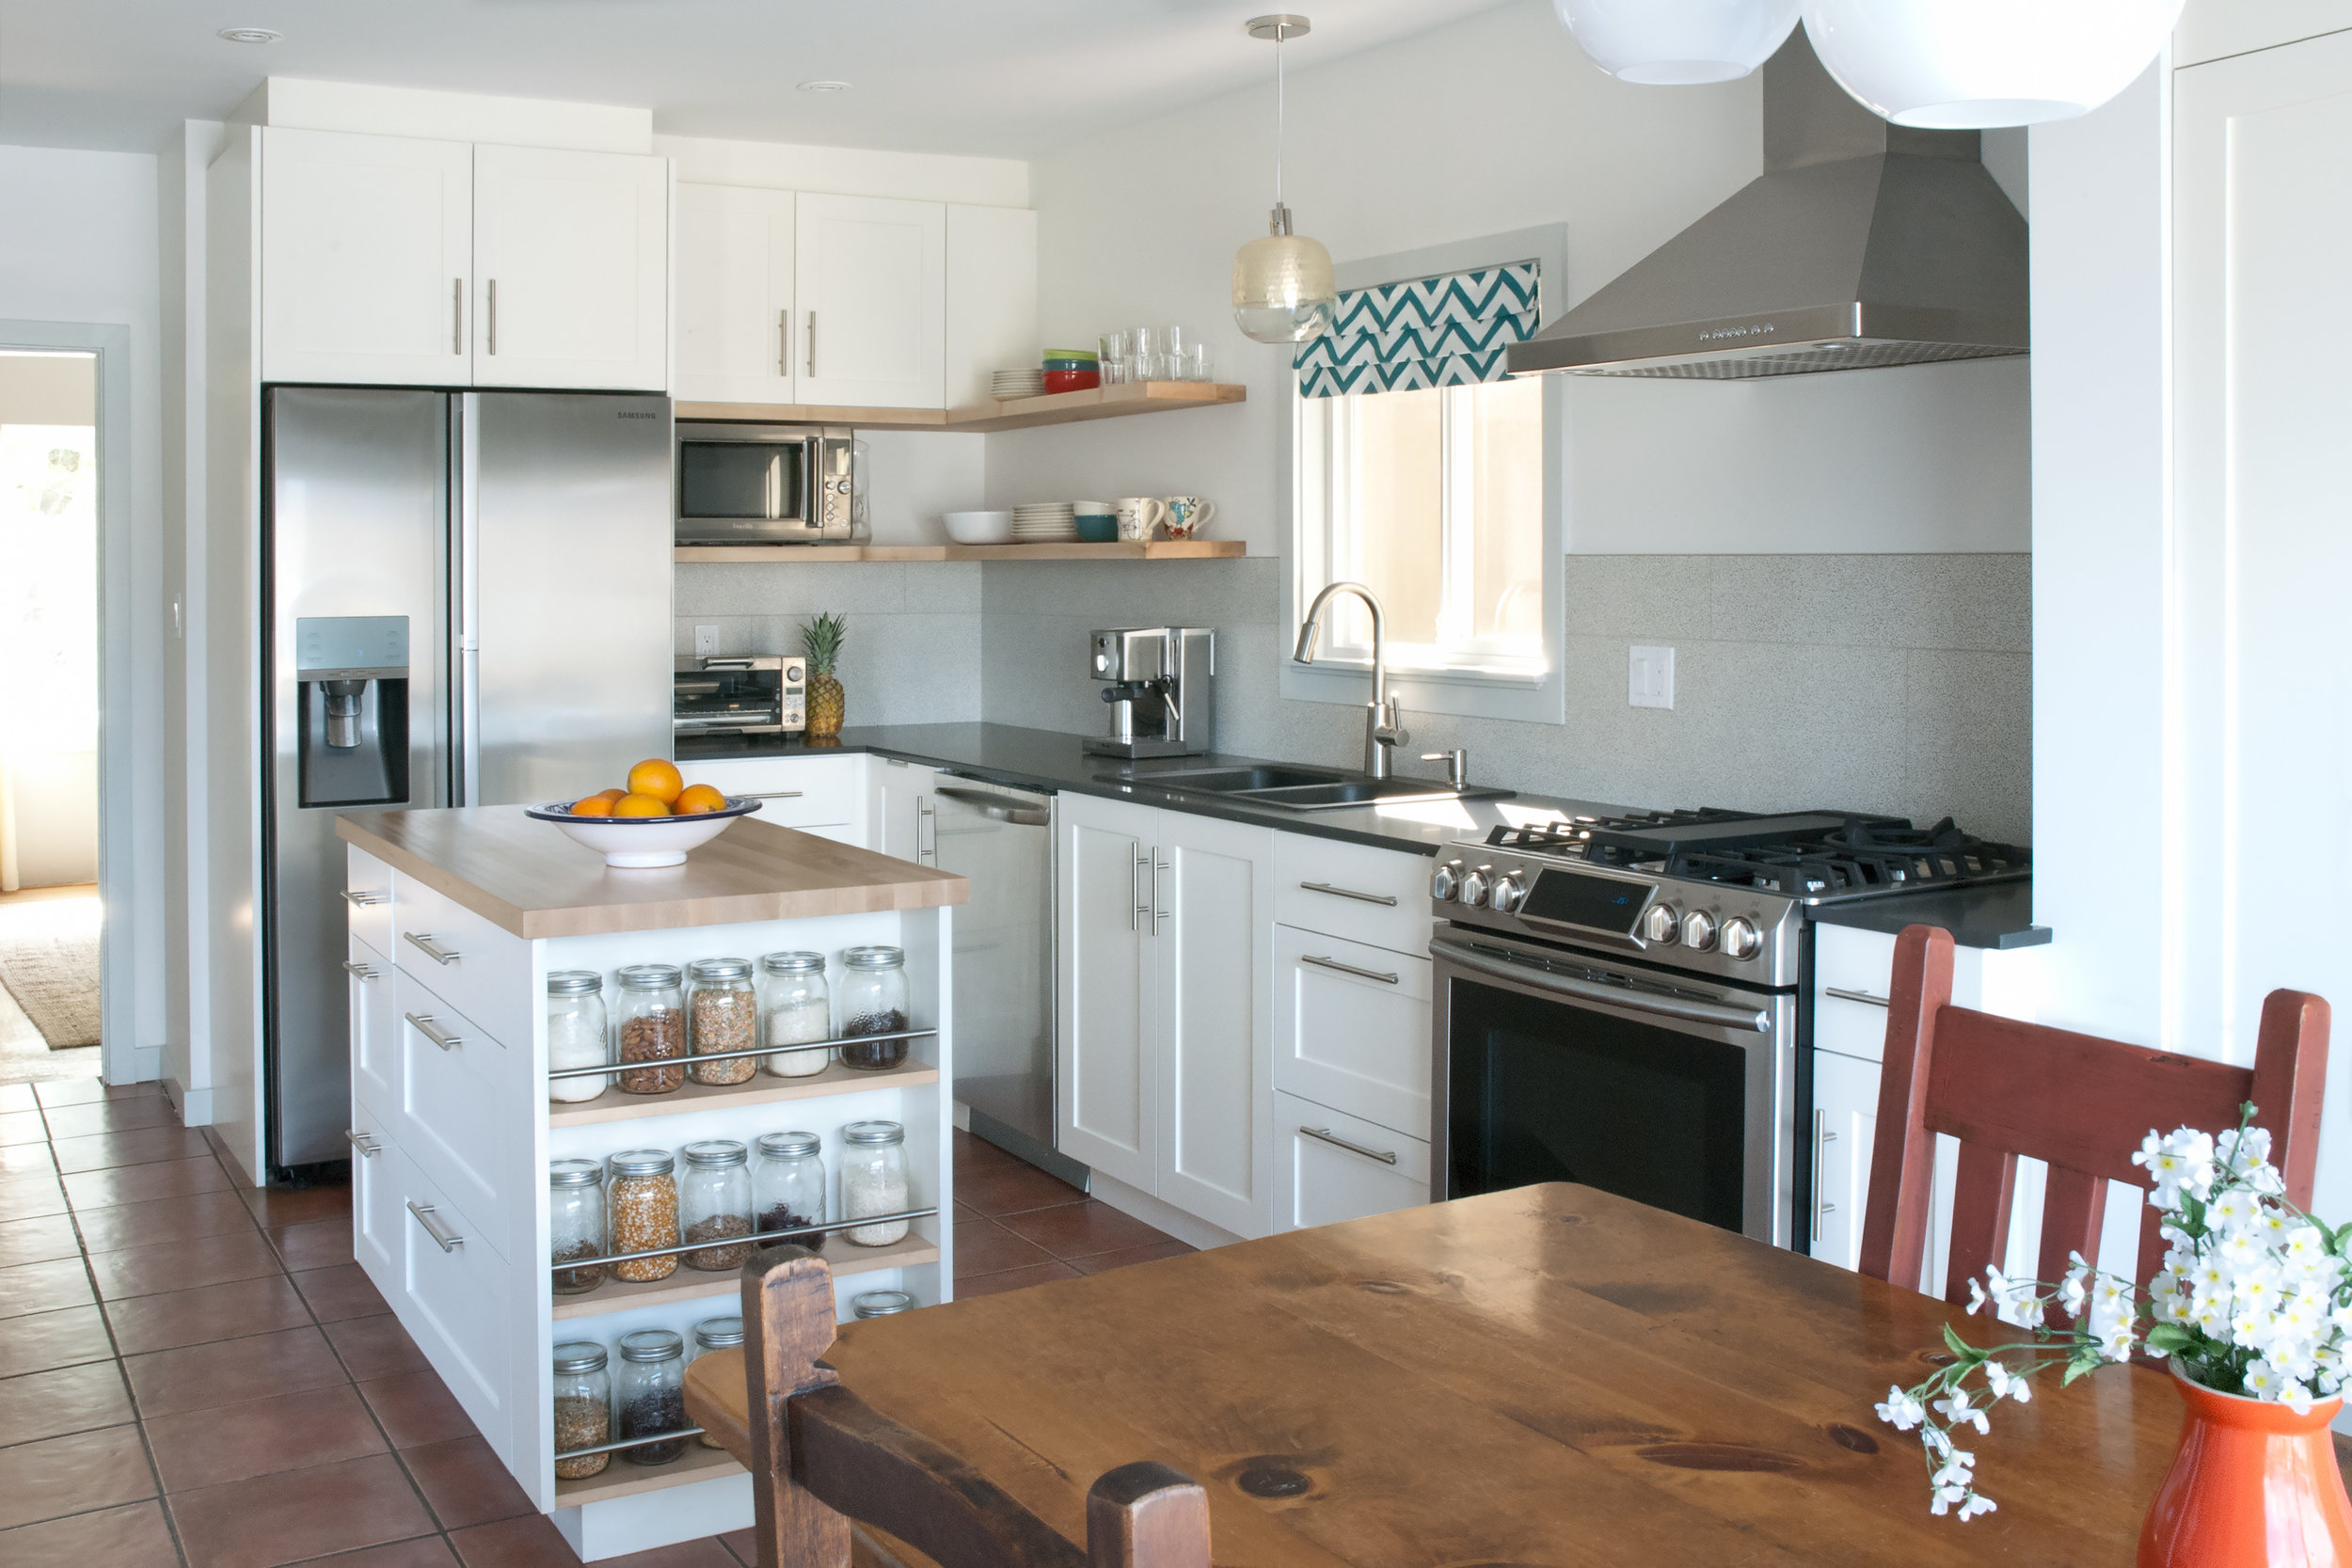 kitchen reno table sets for sale east van suzanne ward interiors this project involved a complete rehab family who had just moved into